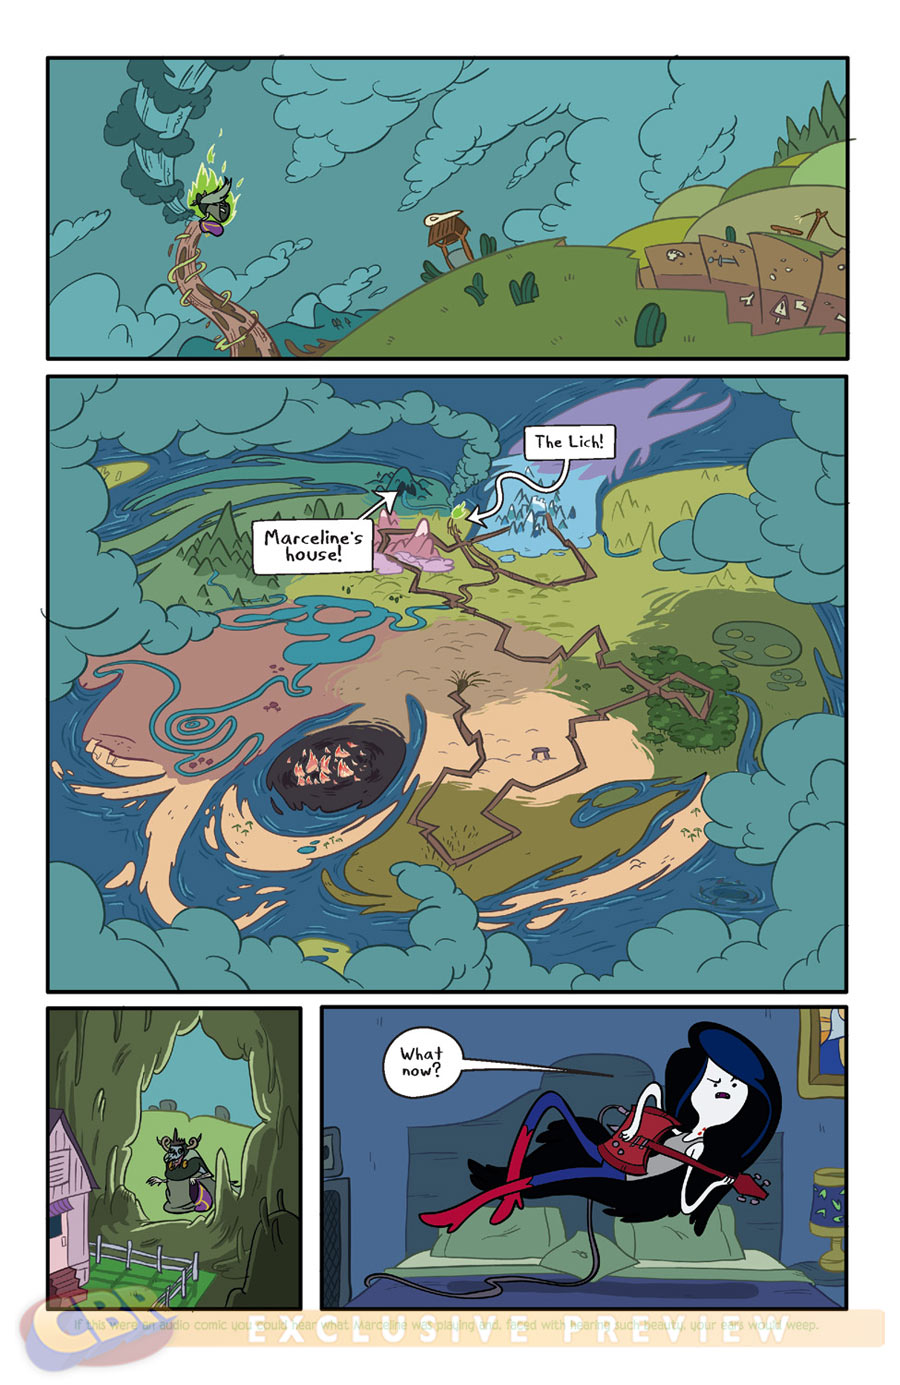 Comicpreview2